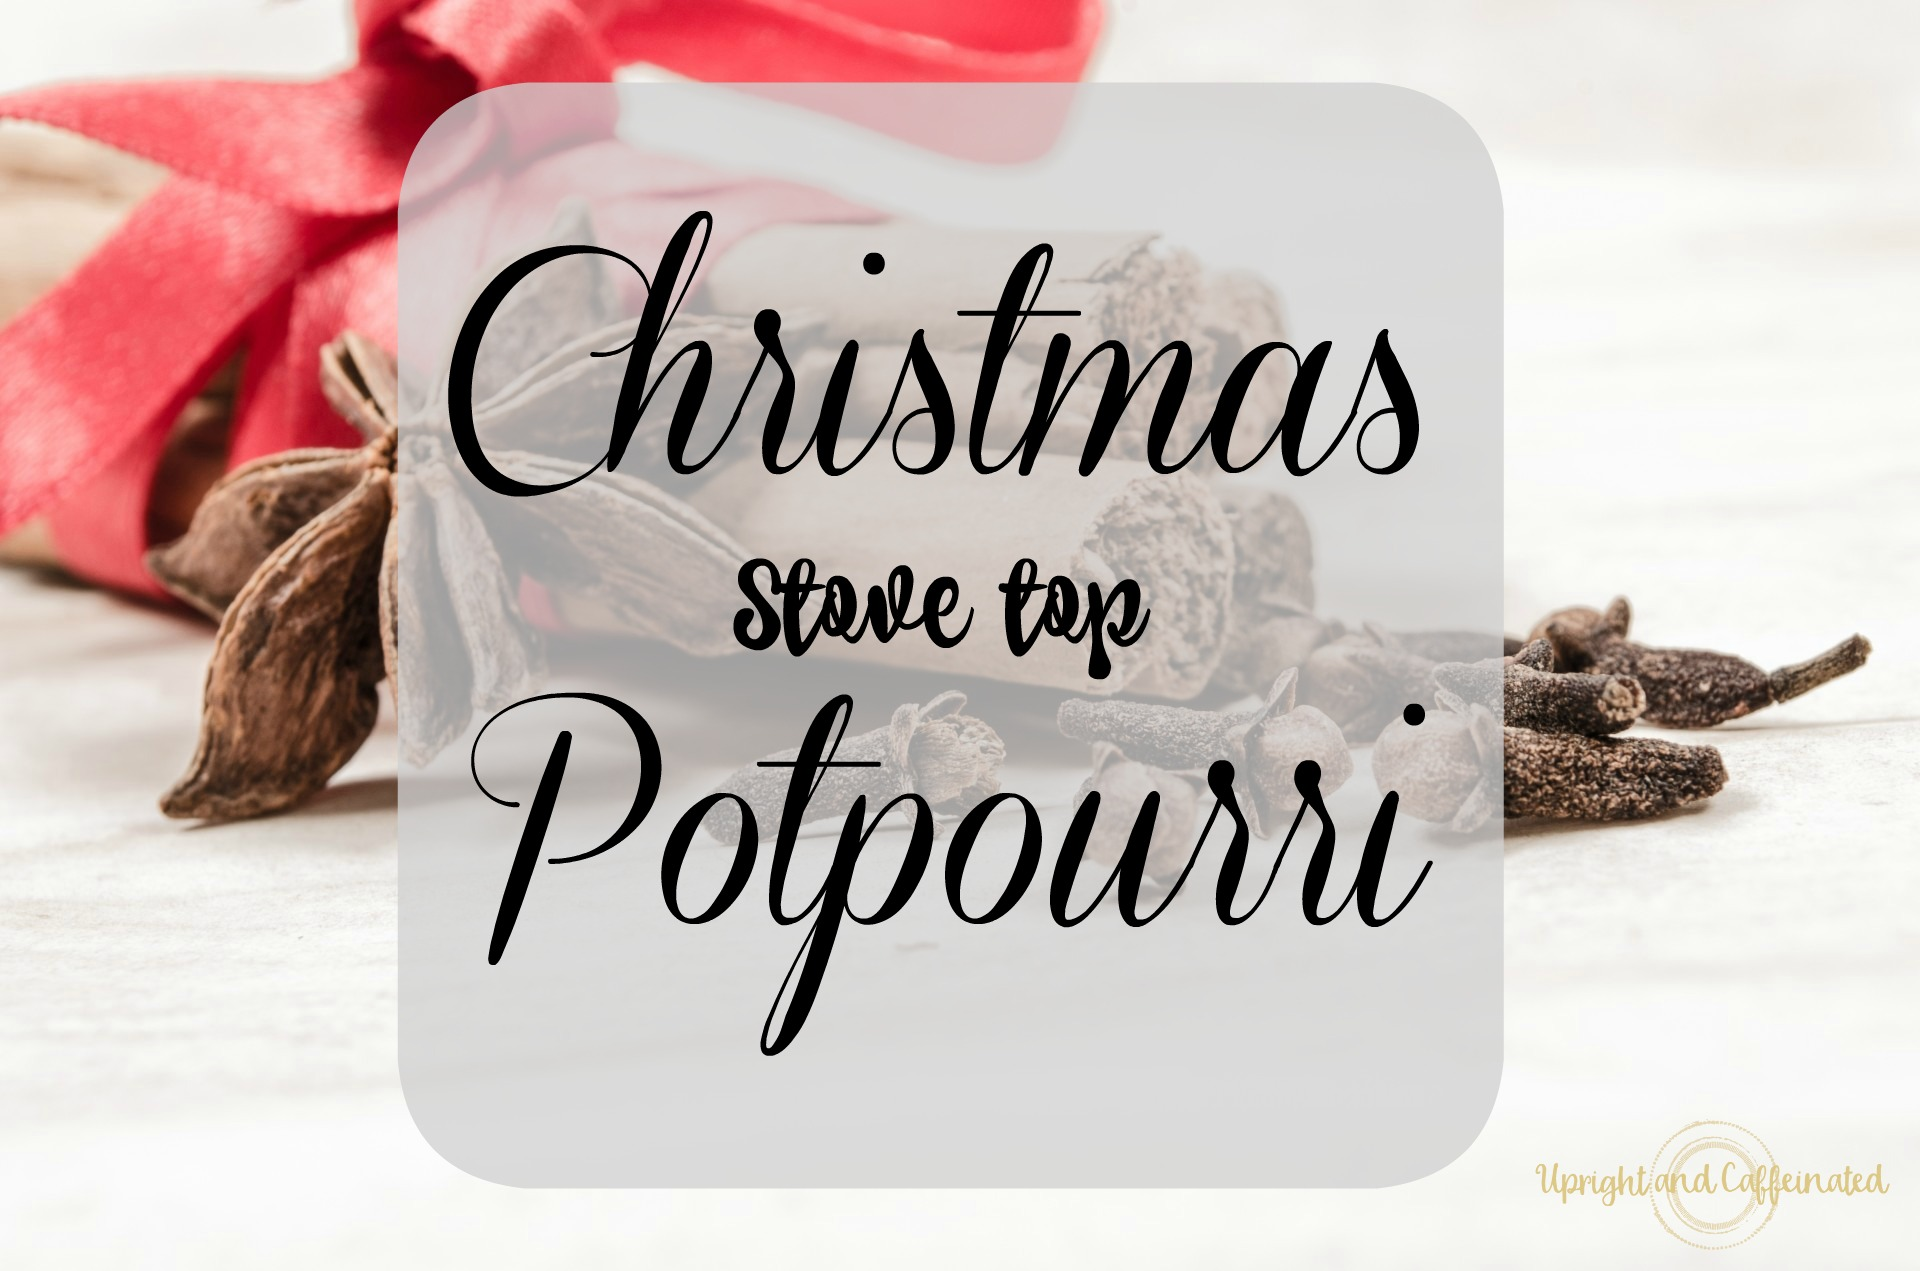 Make your house smell AMAZING! Christmas Stove Top Potpourri. Upright and Caffeinated